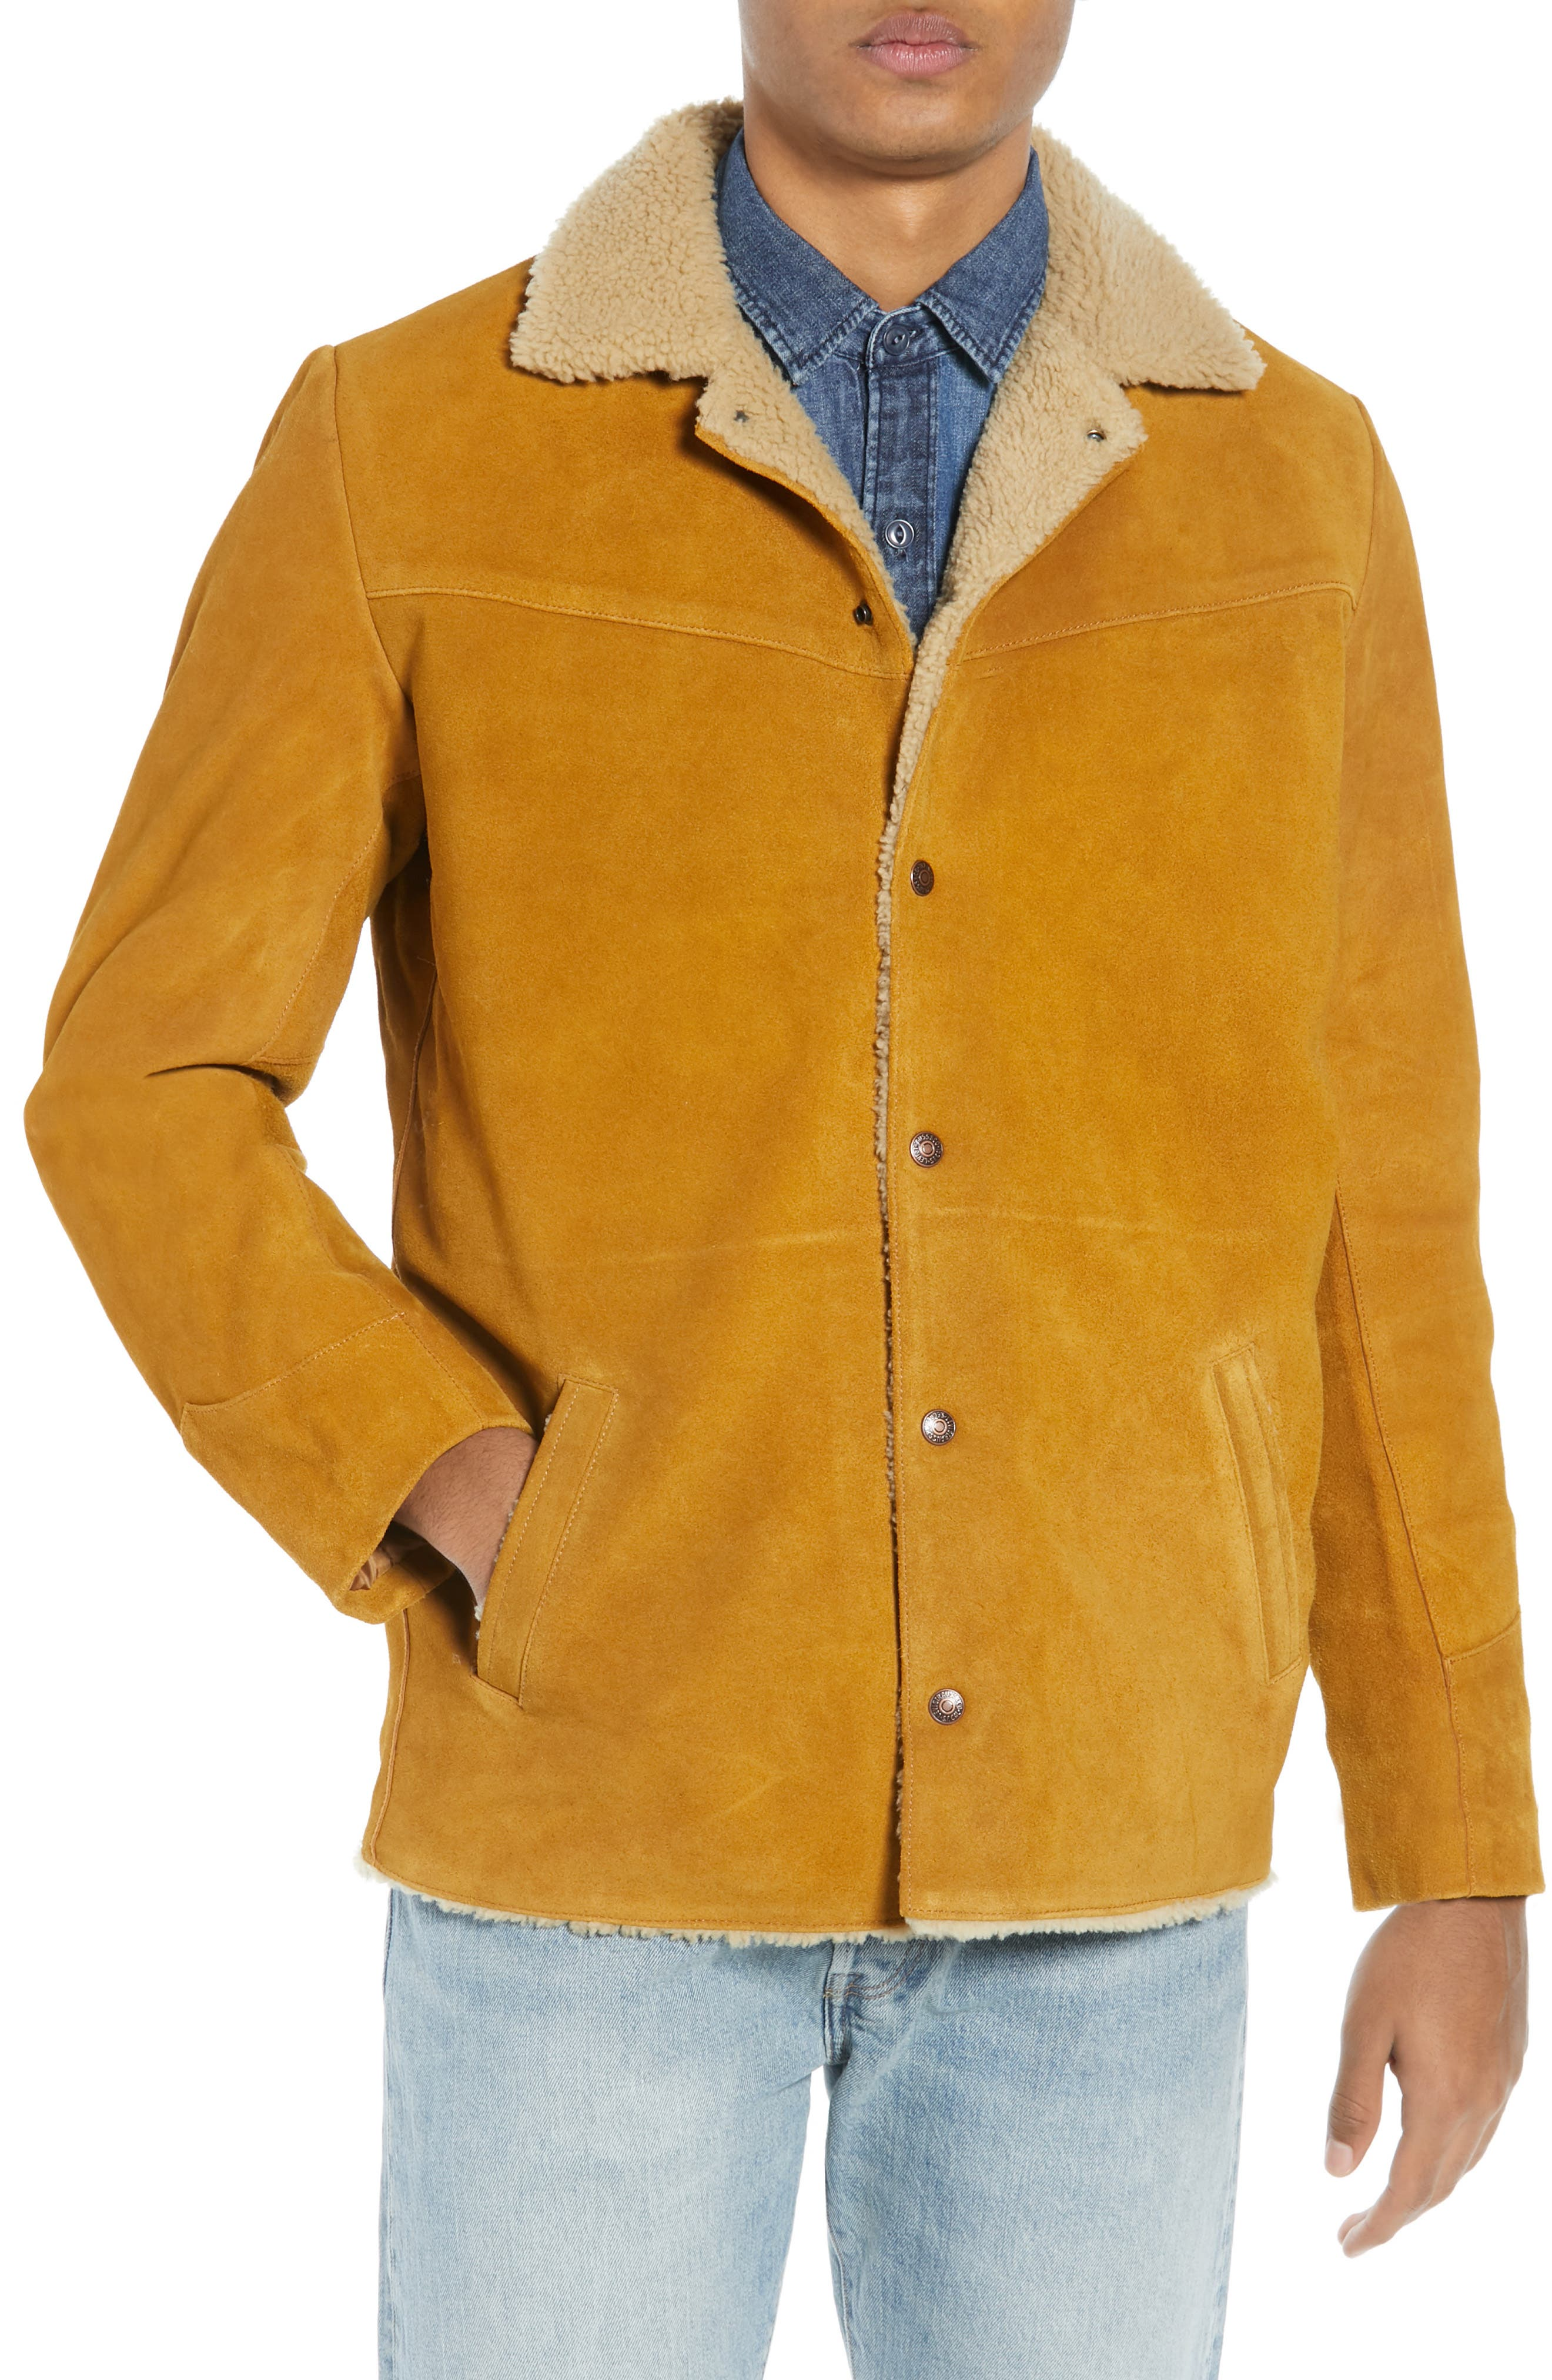 Levi's<sup>®</sup> Fleece Lined Suede Jacket,                             Alternate thumbnail 4, color,                             250